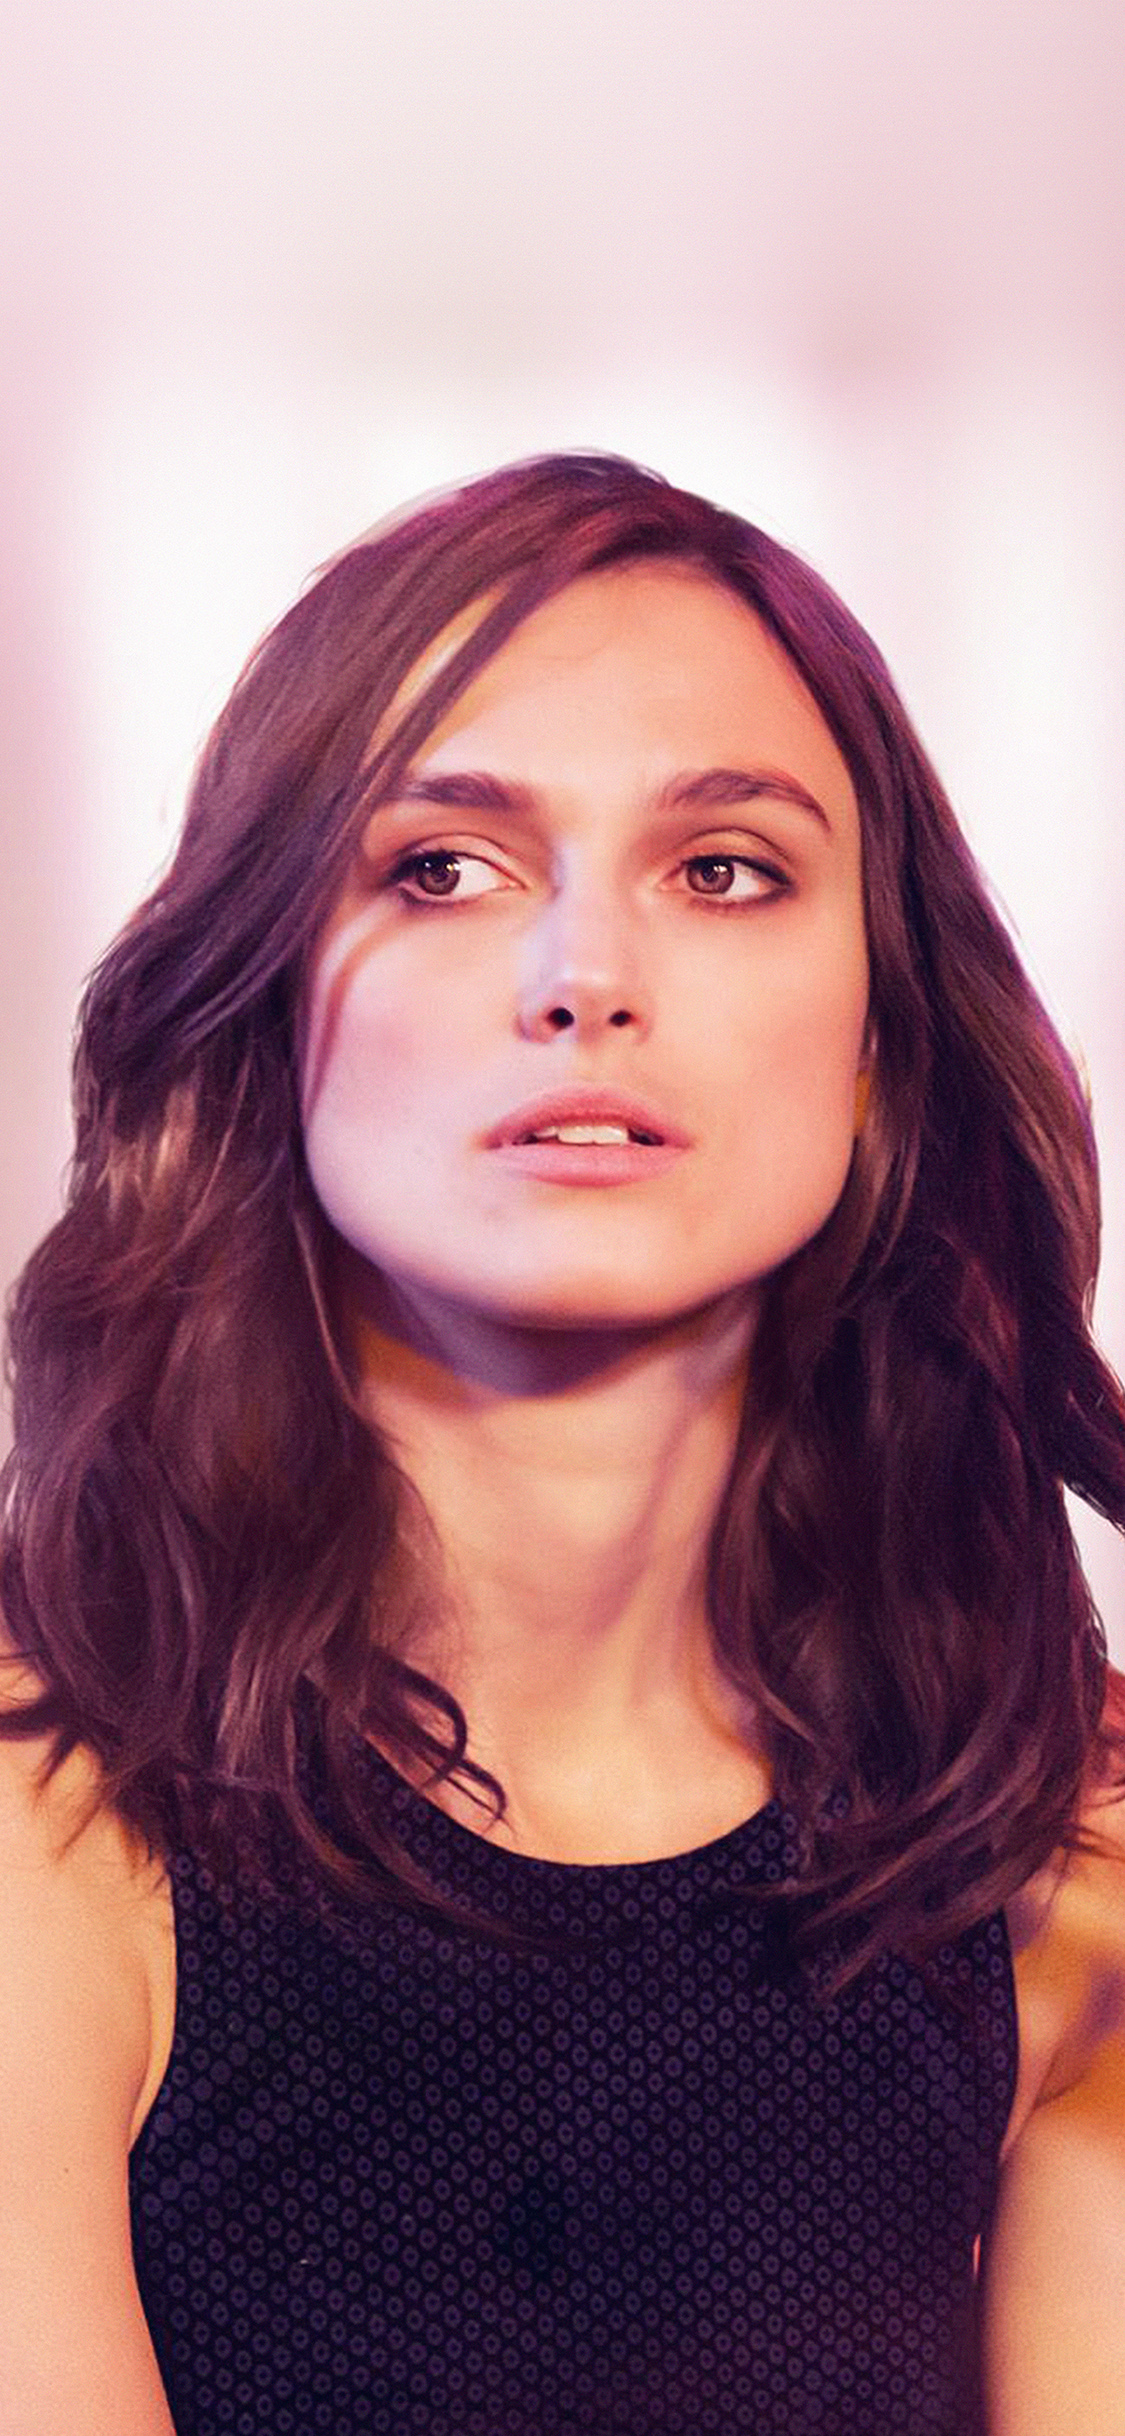 iPhoneXpapers.com-Apple-iPhone-wallpaper-hm58-keira-knightley-pink-girl-actress